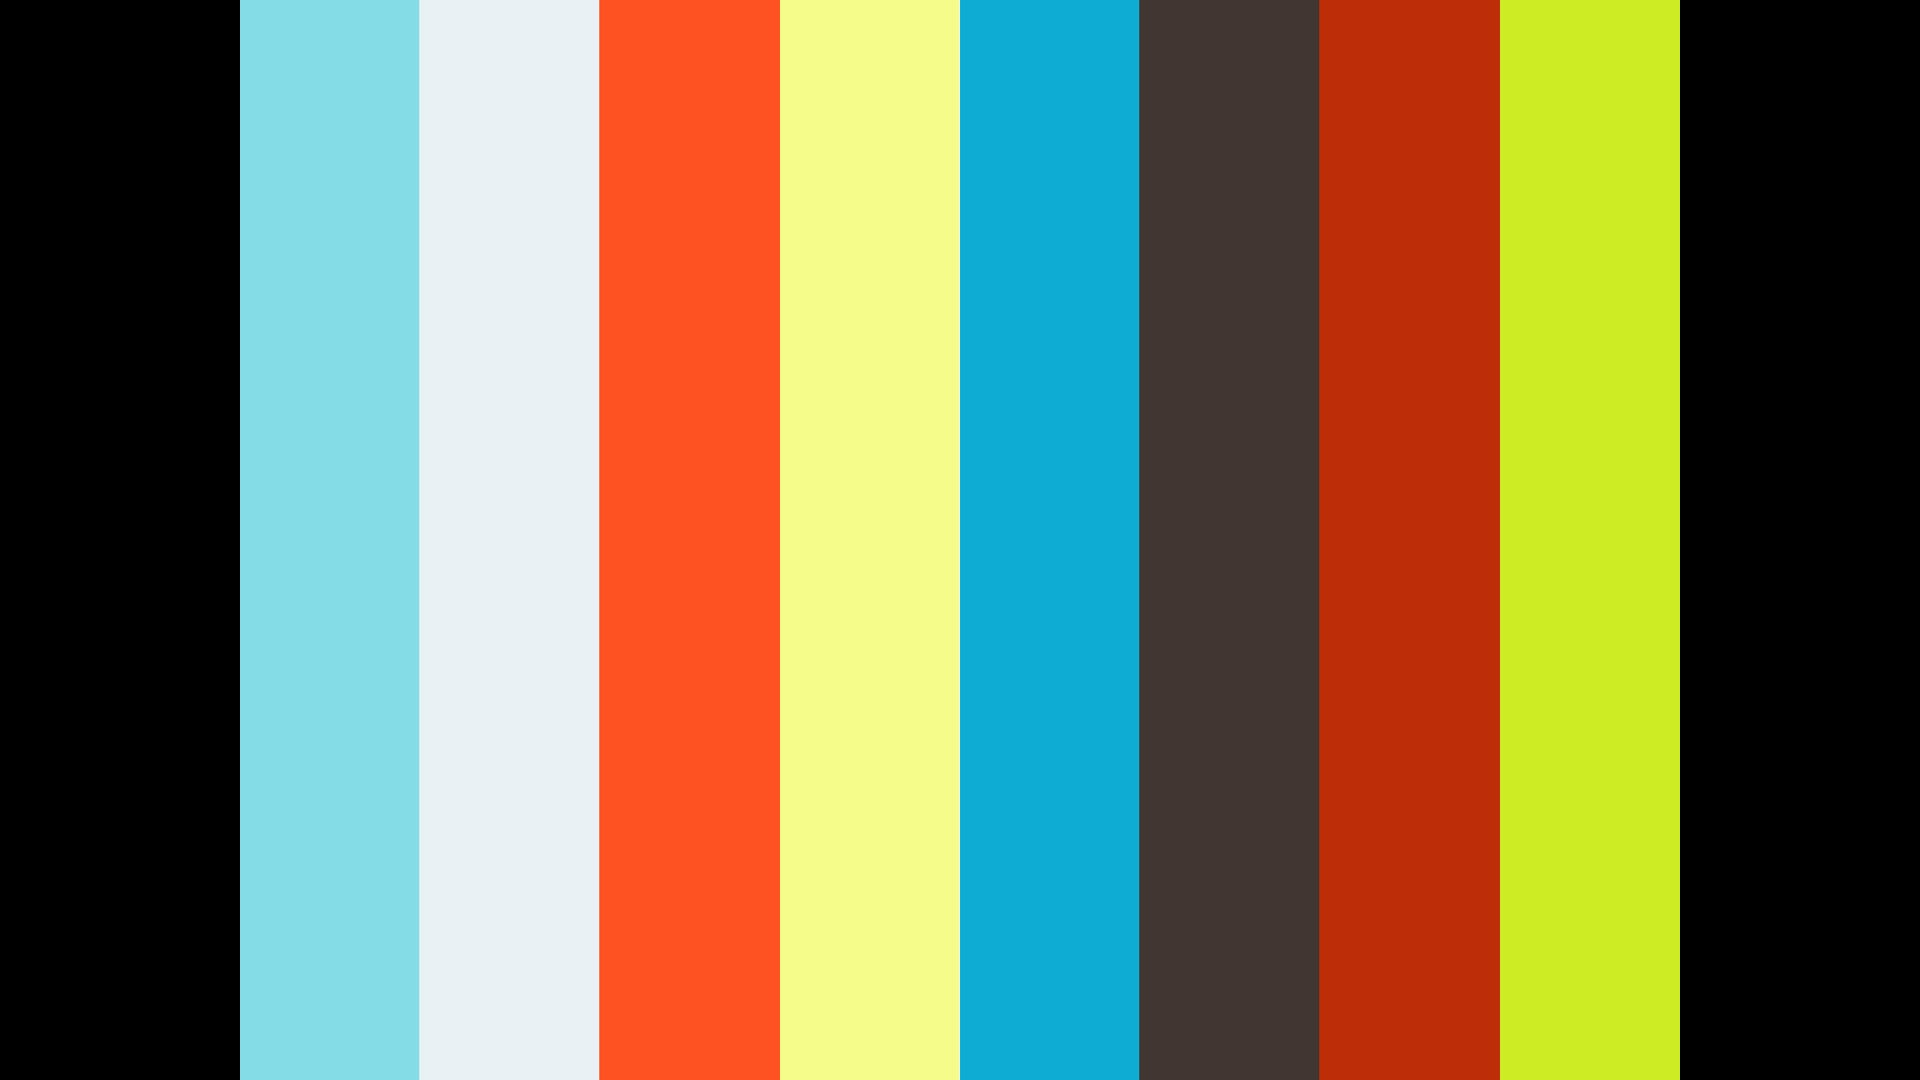 GoPro 2010 - Year One